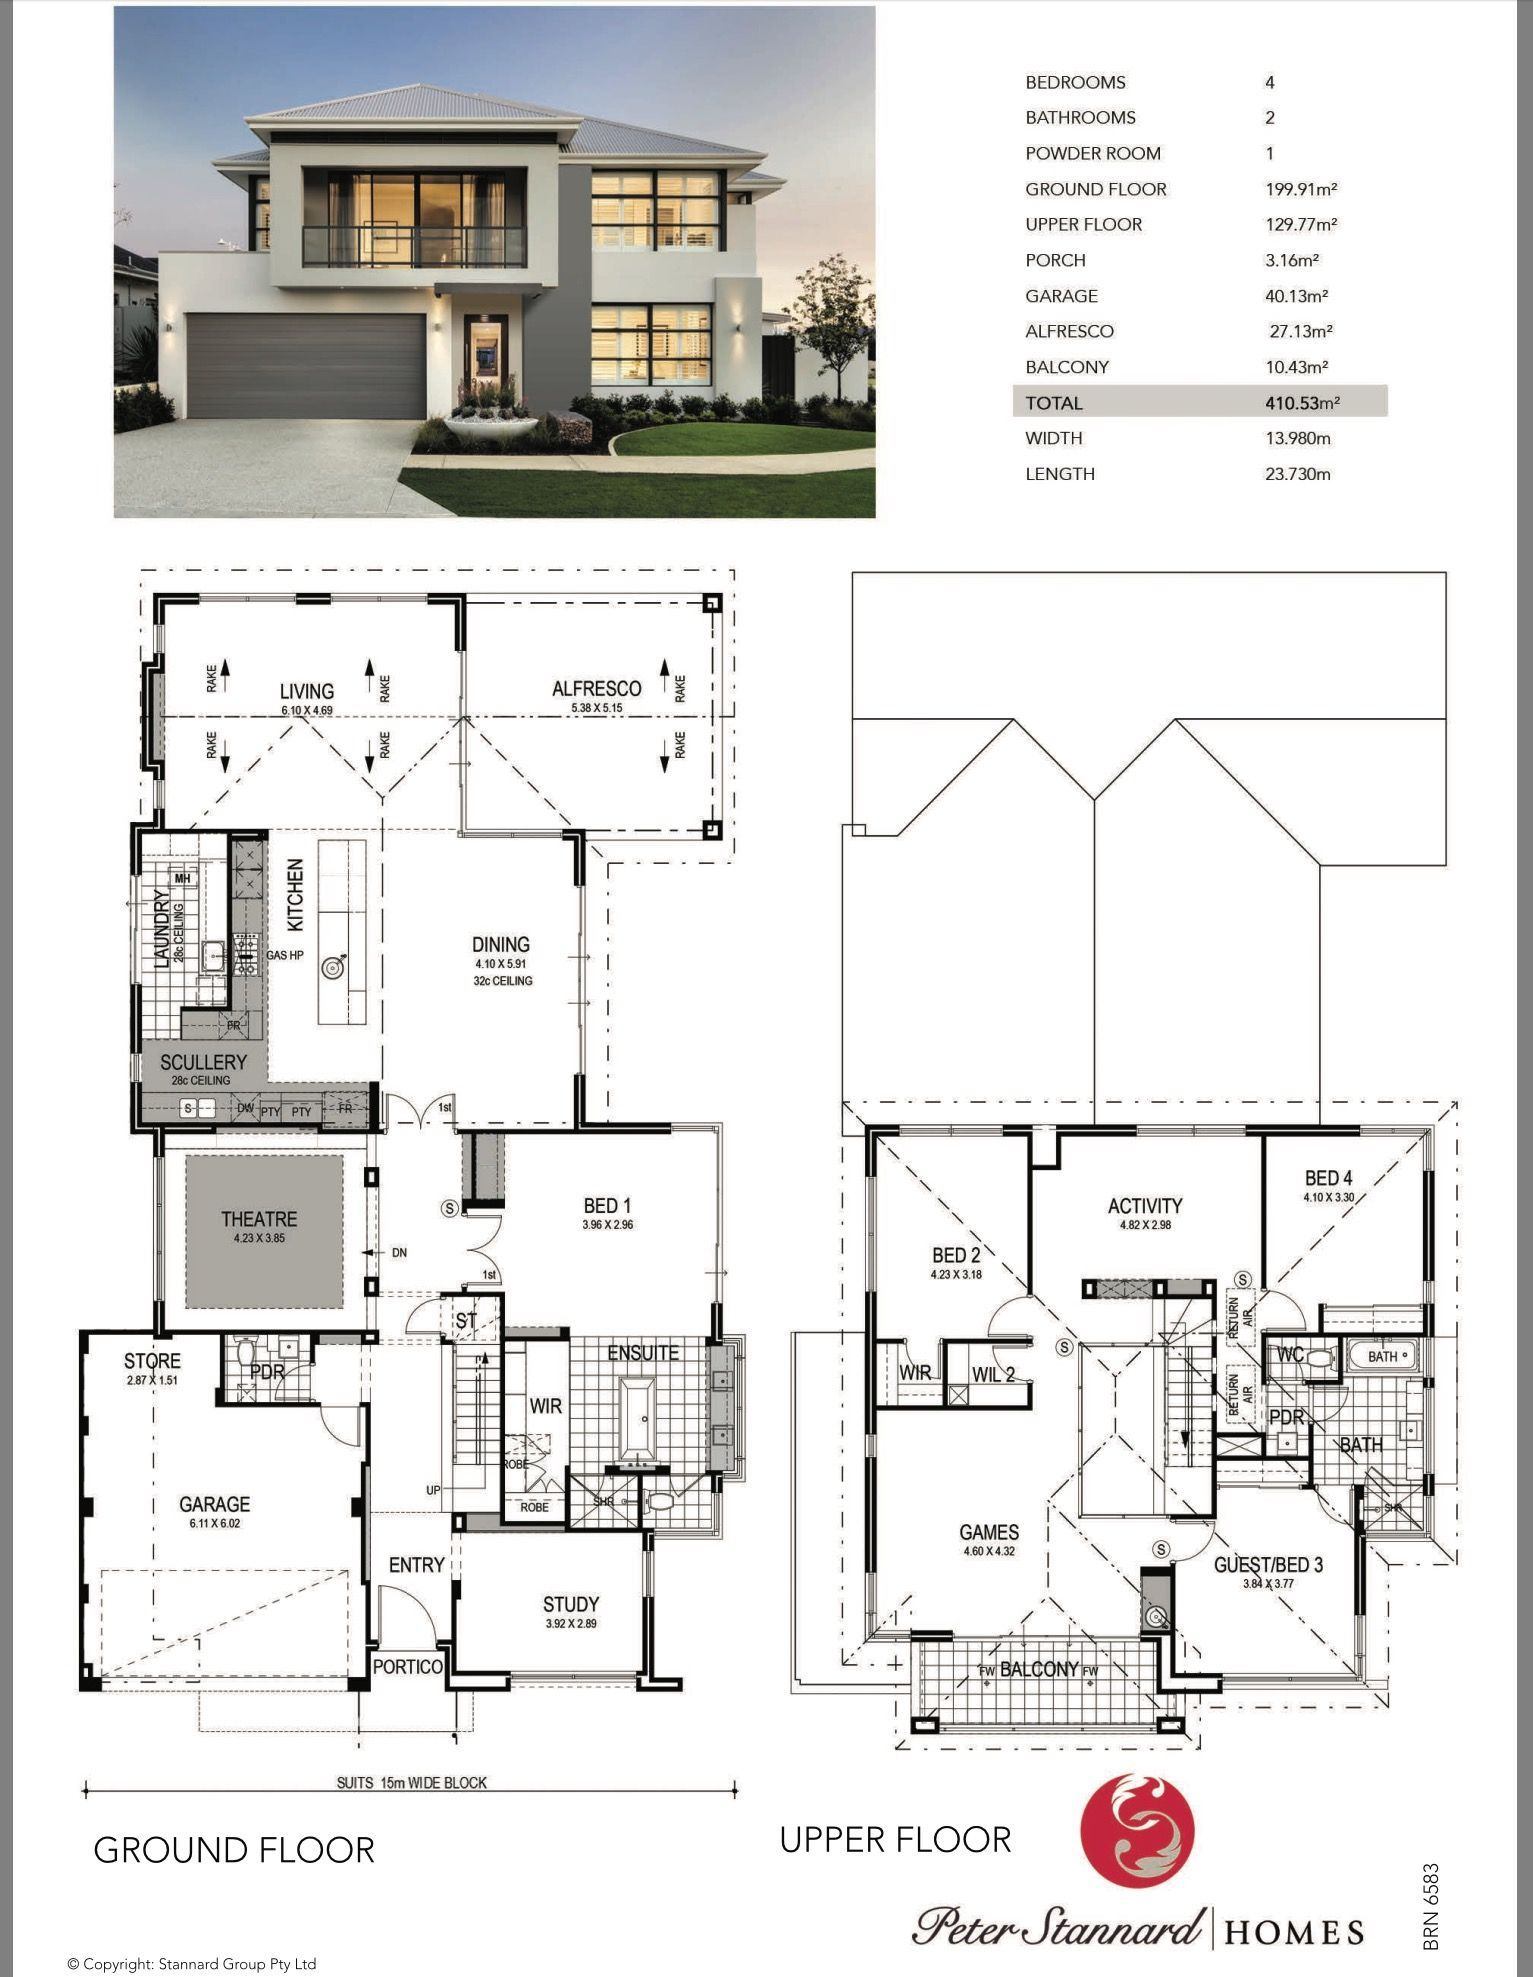 Ants, House Design, Facades, House Plans, Homework, Blueprints For Homes,  Ant, House Floor Plans, Facade